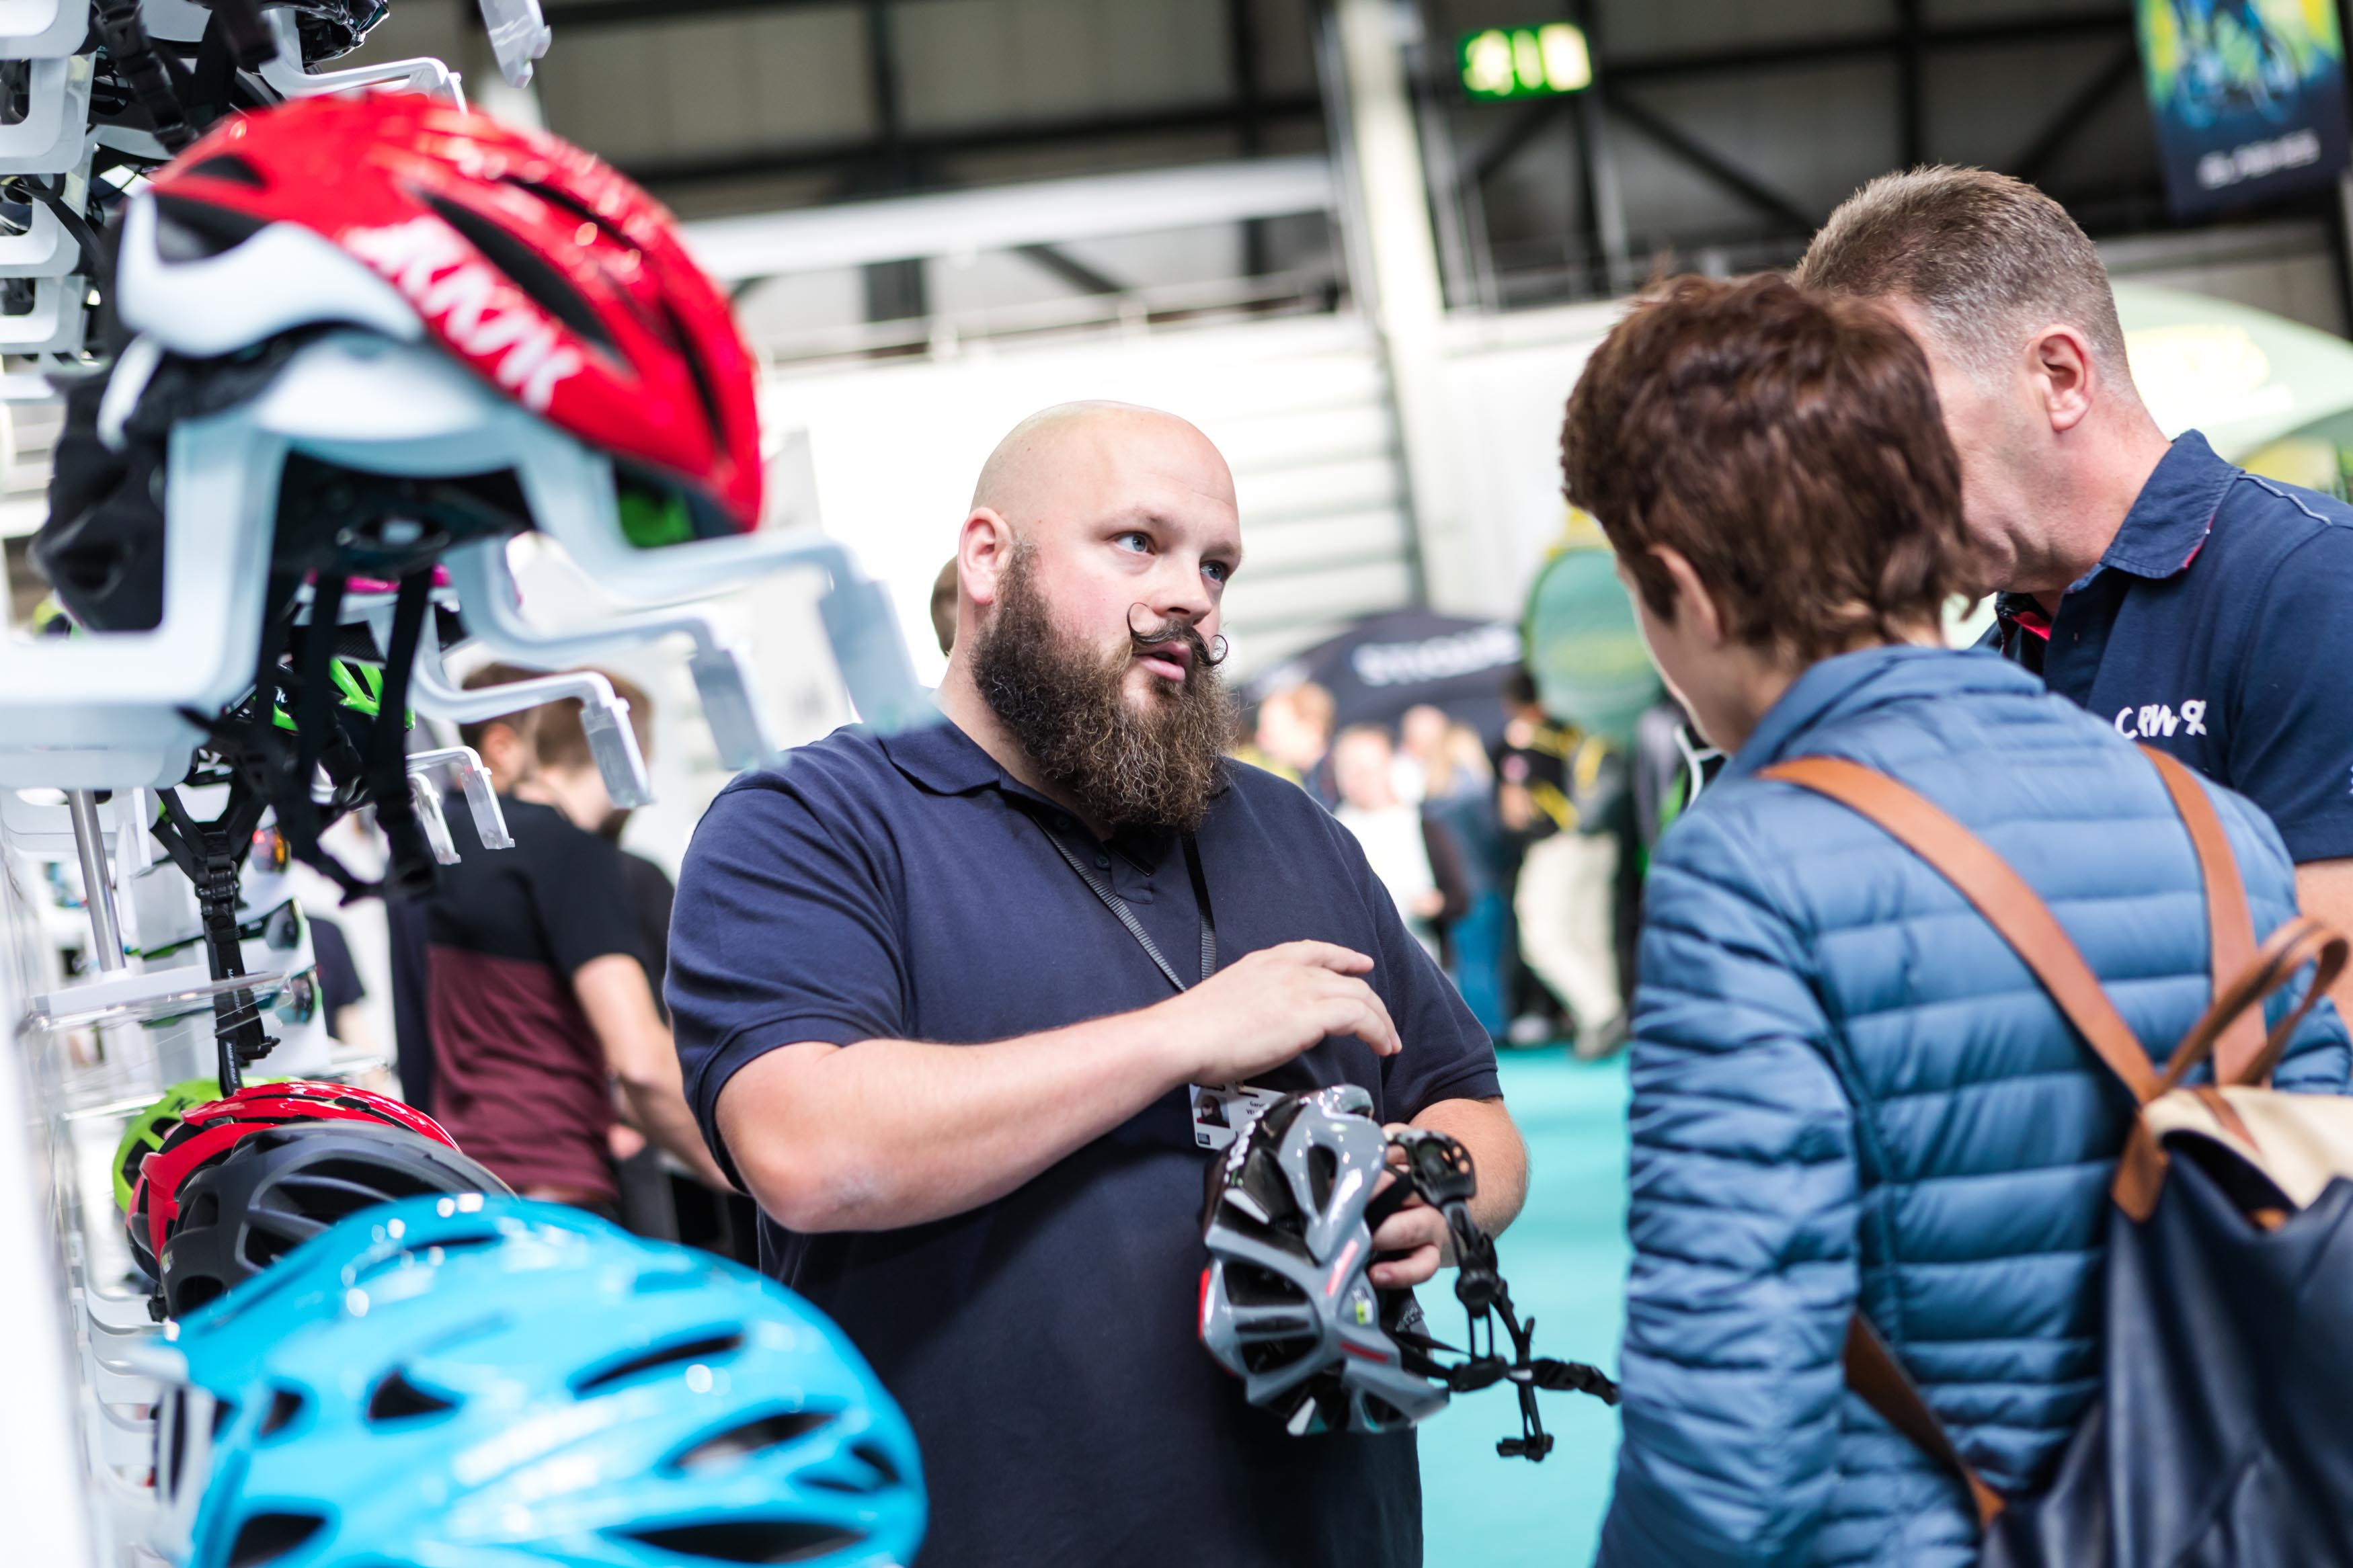 The Cycle Show is full of the latest gear, tech and accessories